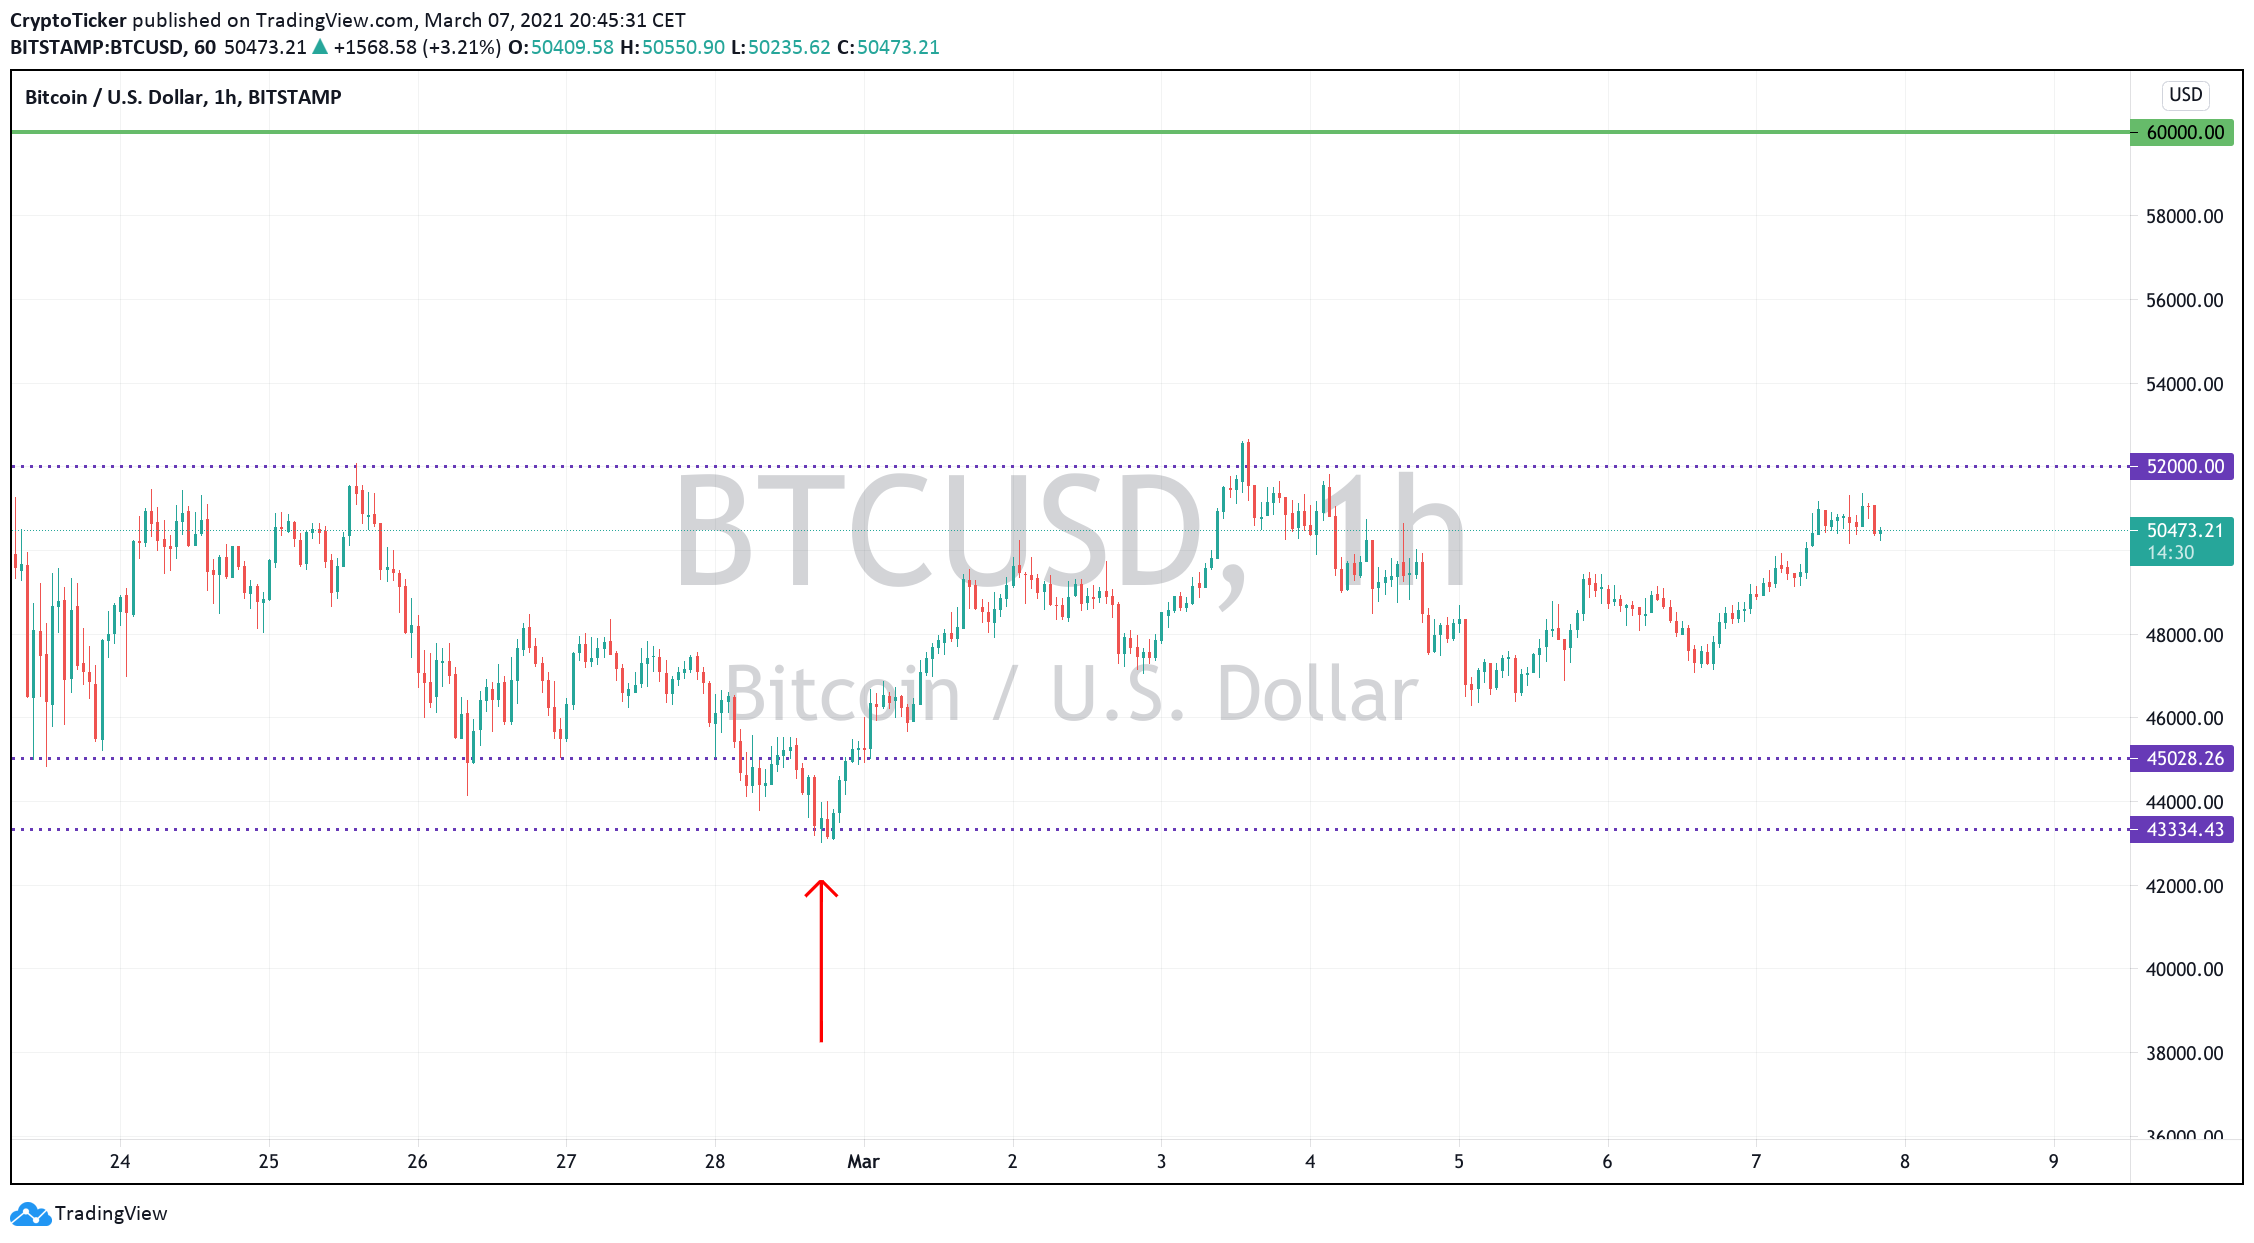 BTC/USD 1-hour chart showing the past consolidation